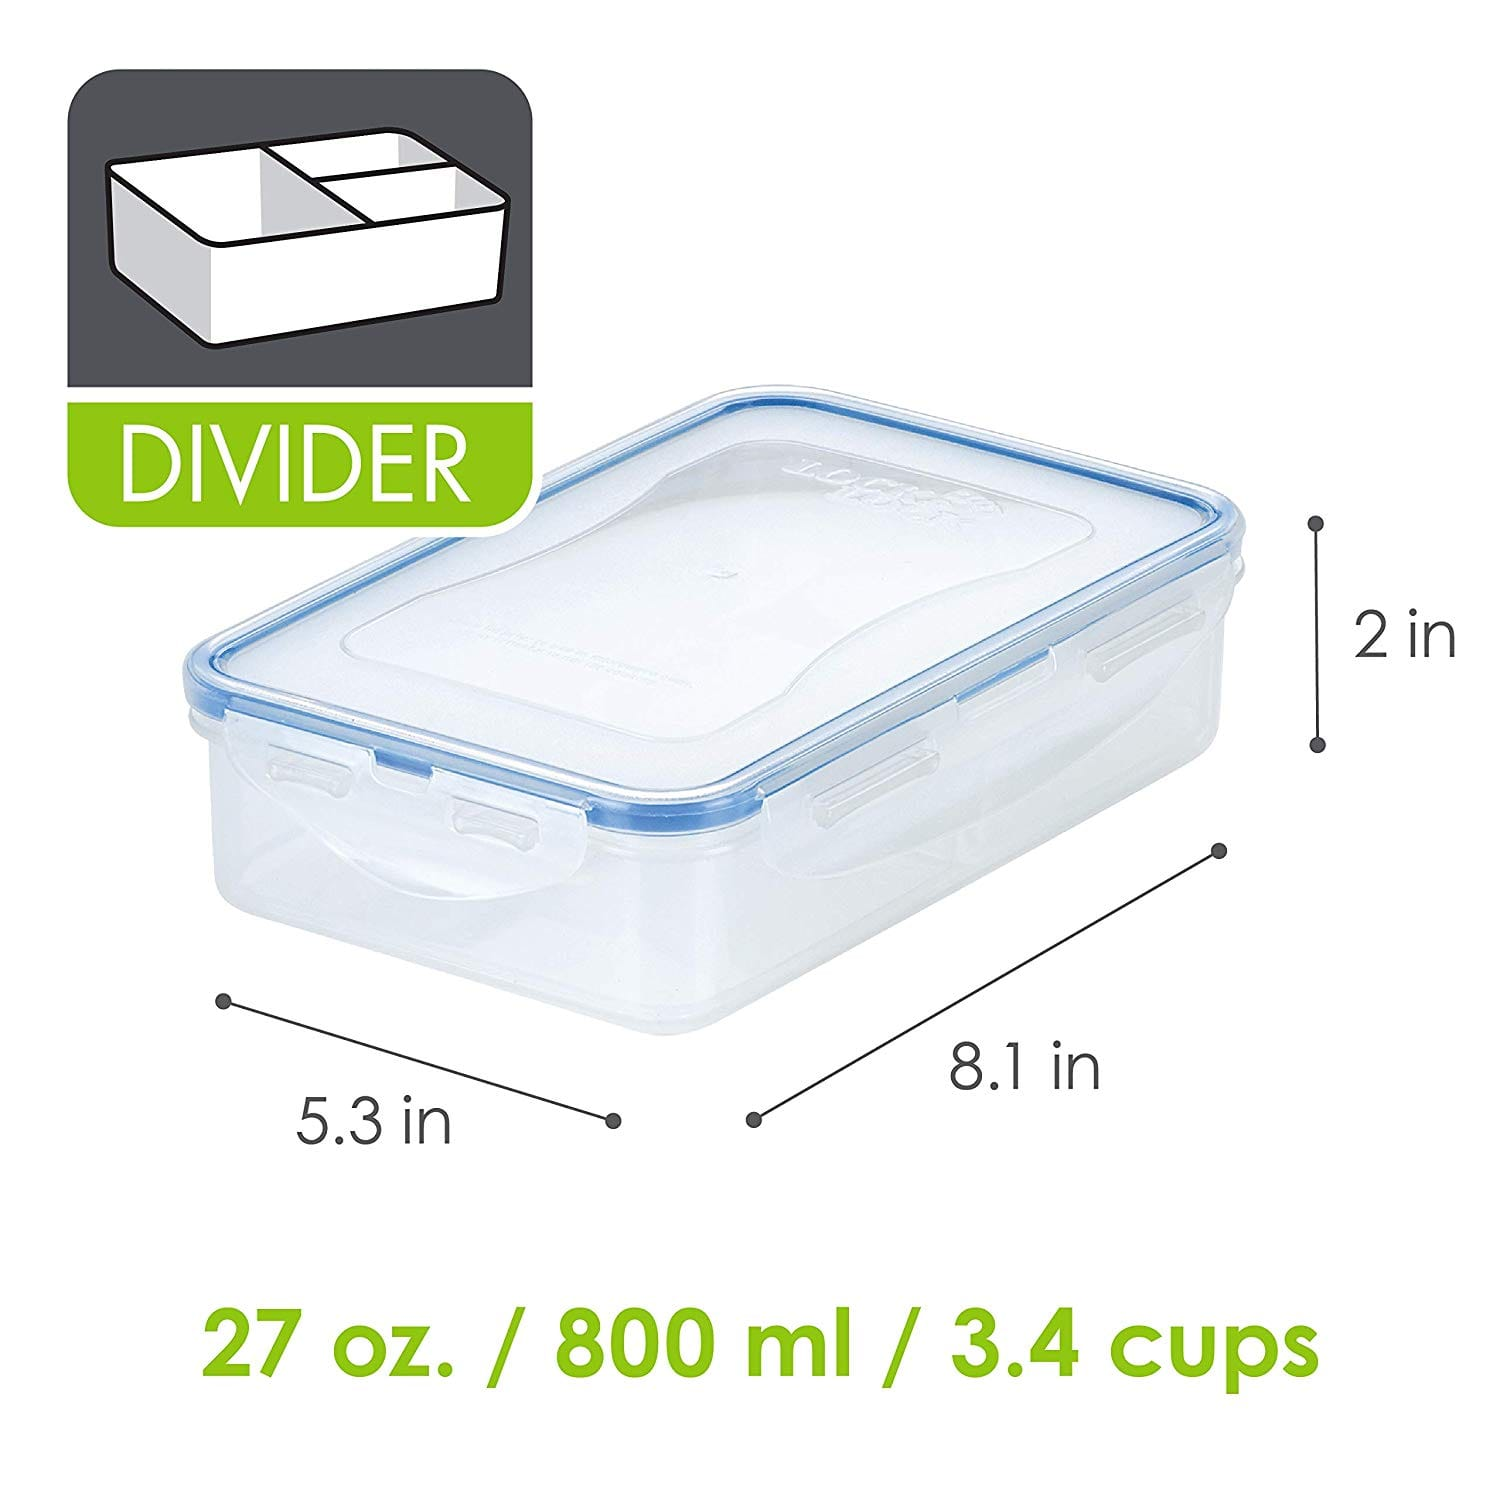 27-Oz Lock & Lock Food Storage Container w/ Divider $3.77 + Free Shipping w/ Prime